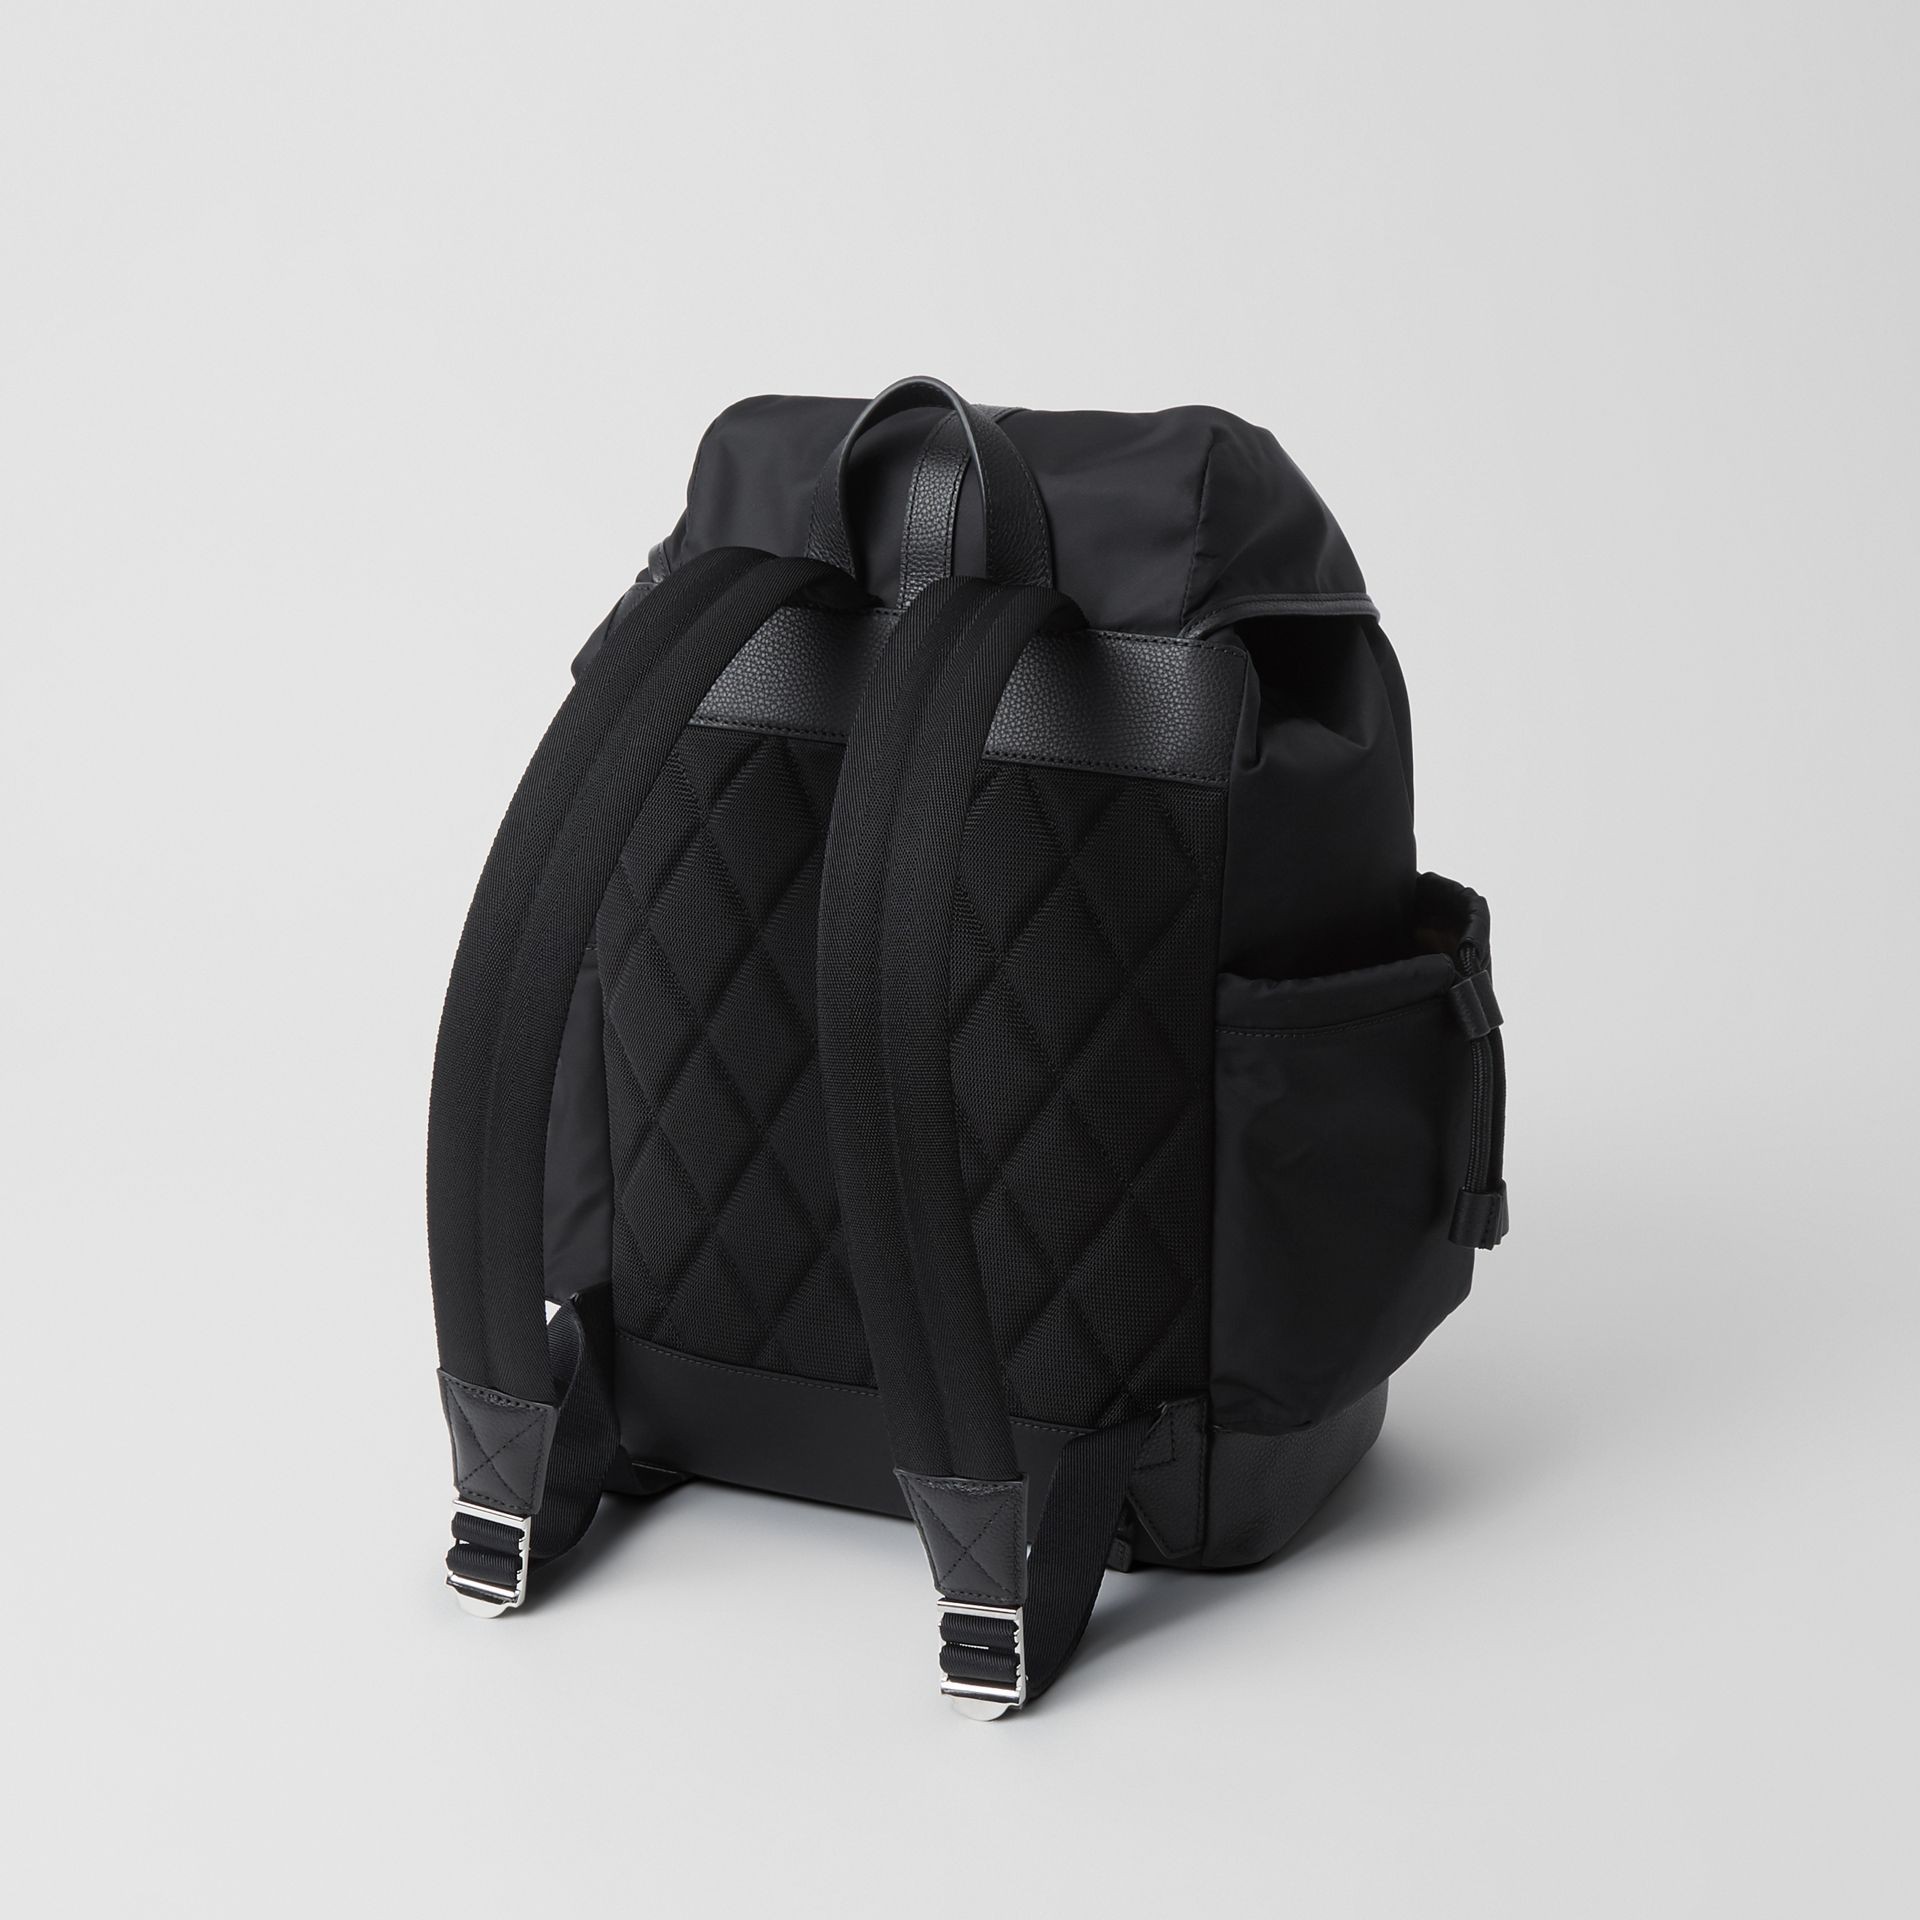 Leather Trim Baby Changing Rucksack in Black - Children | Burberry - gallery image 2